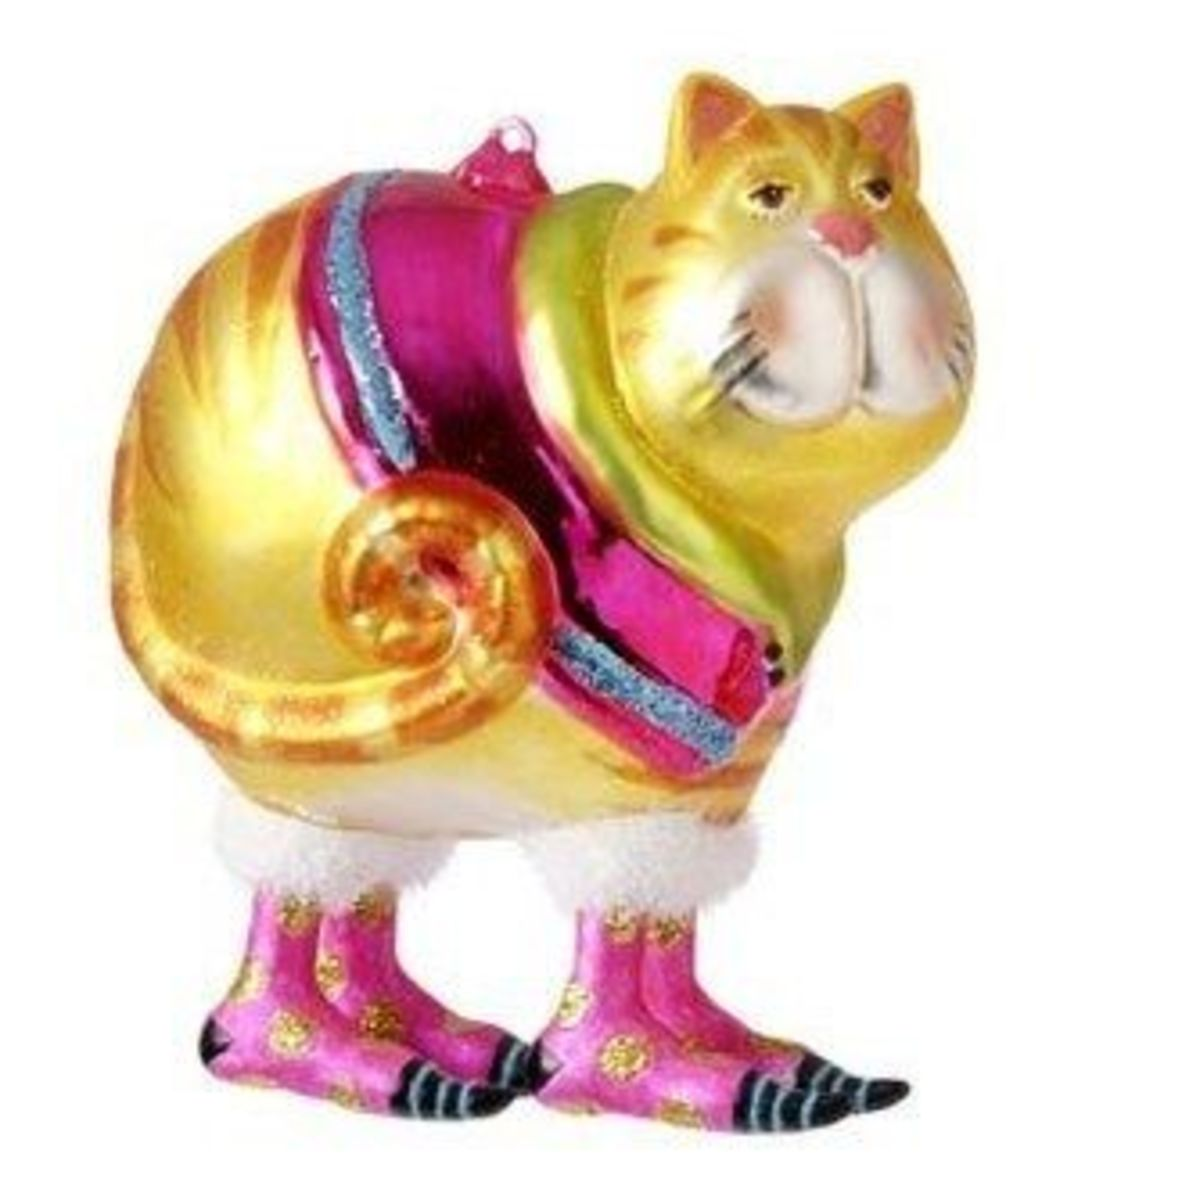 Glass Cat Ornament From RAZ - RAZ Has Four Cat Ornaments In Different Shapes And Colors, So Go Pick Out Your Favorite!  Image Credit: Amazon